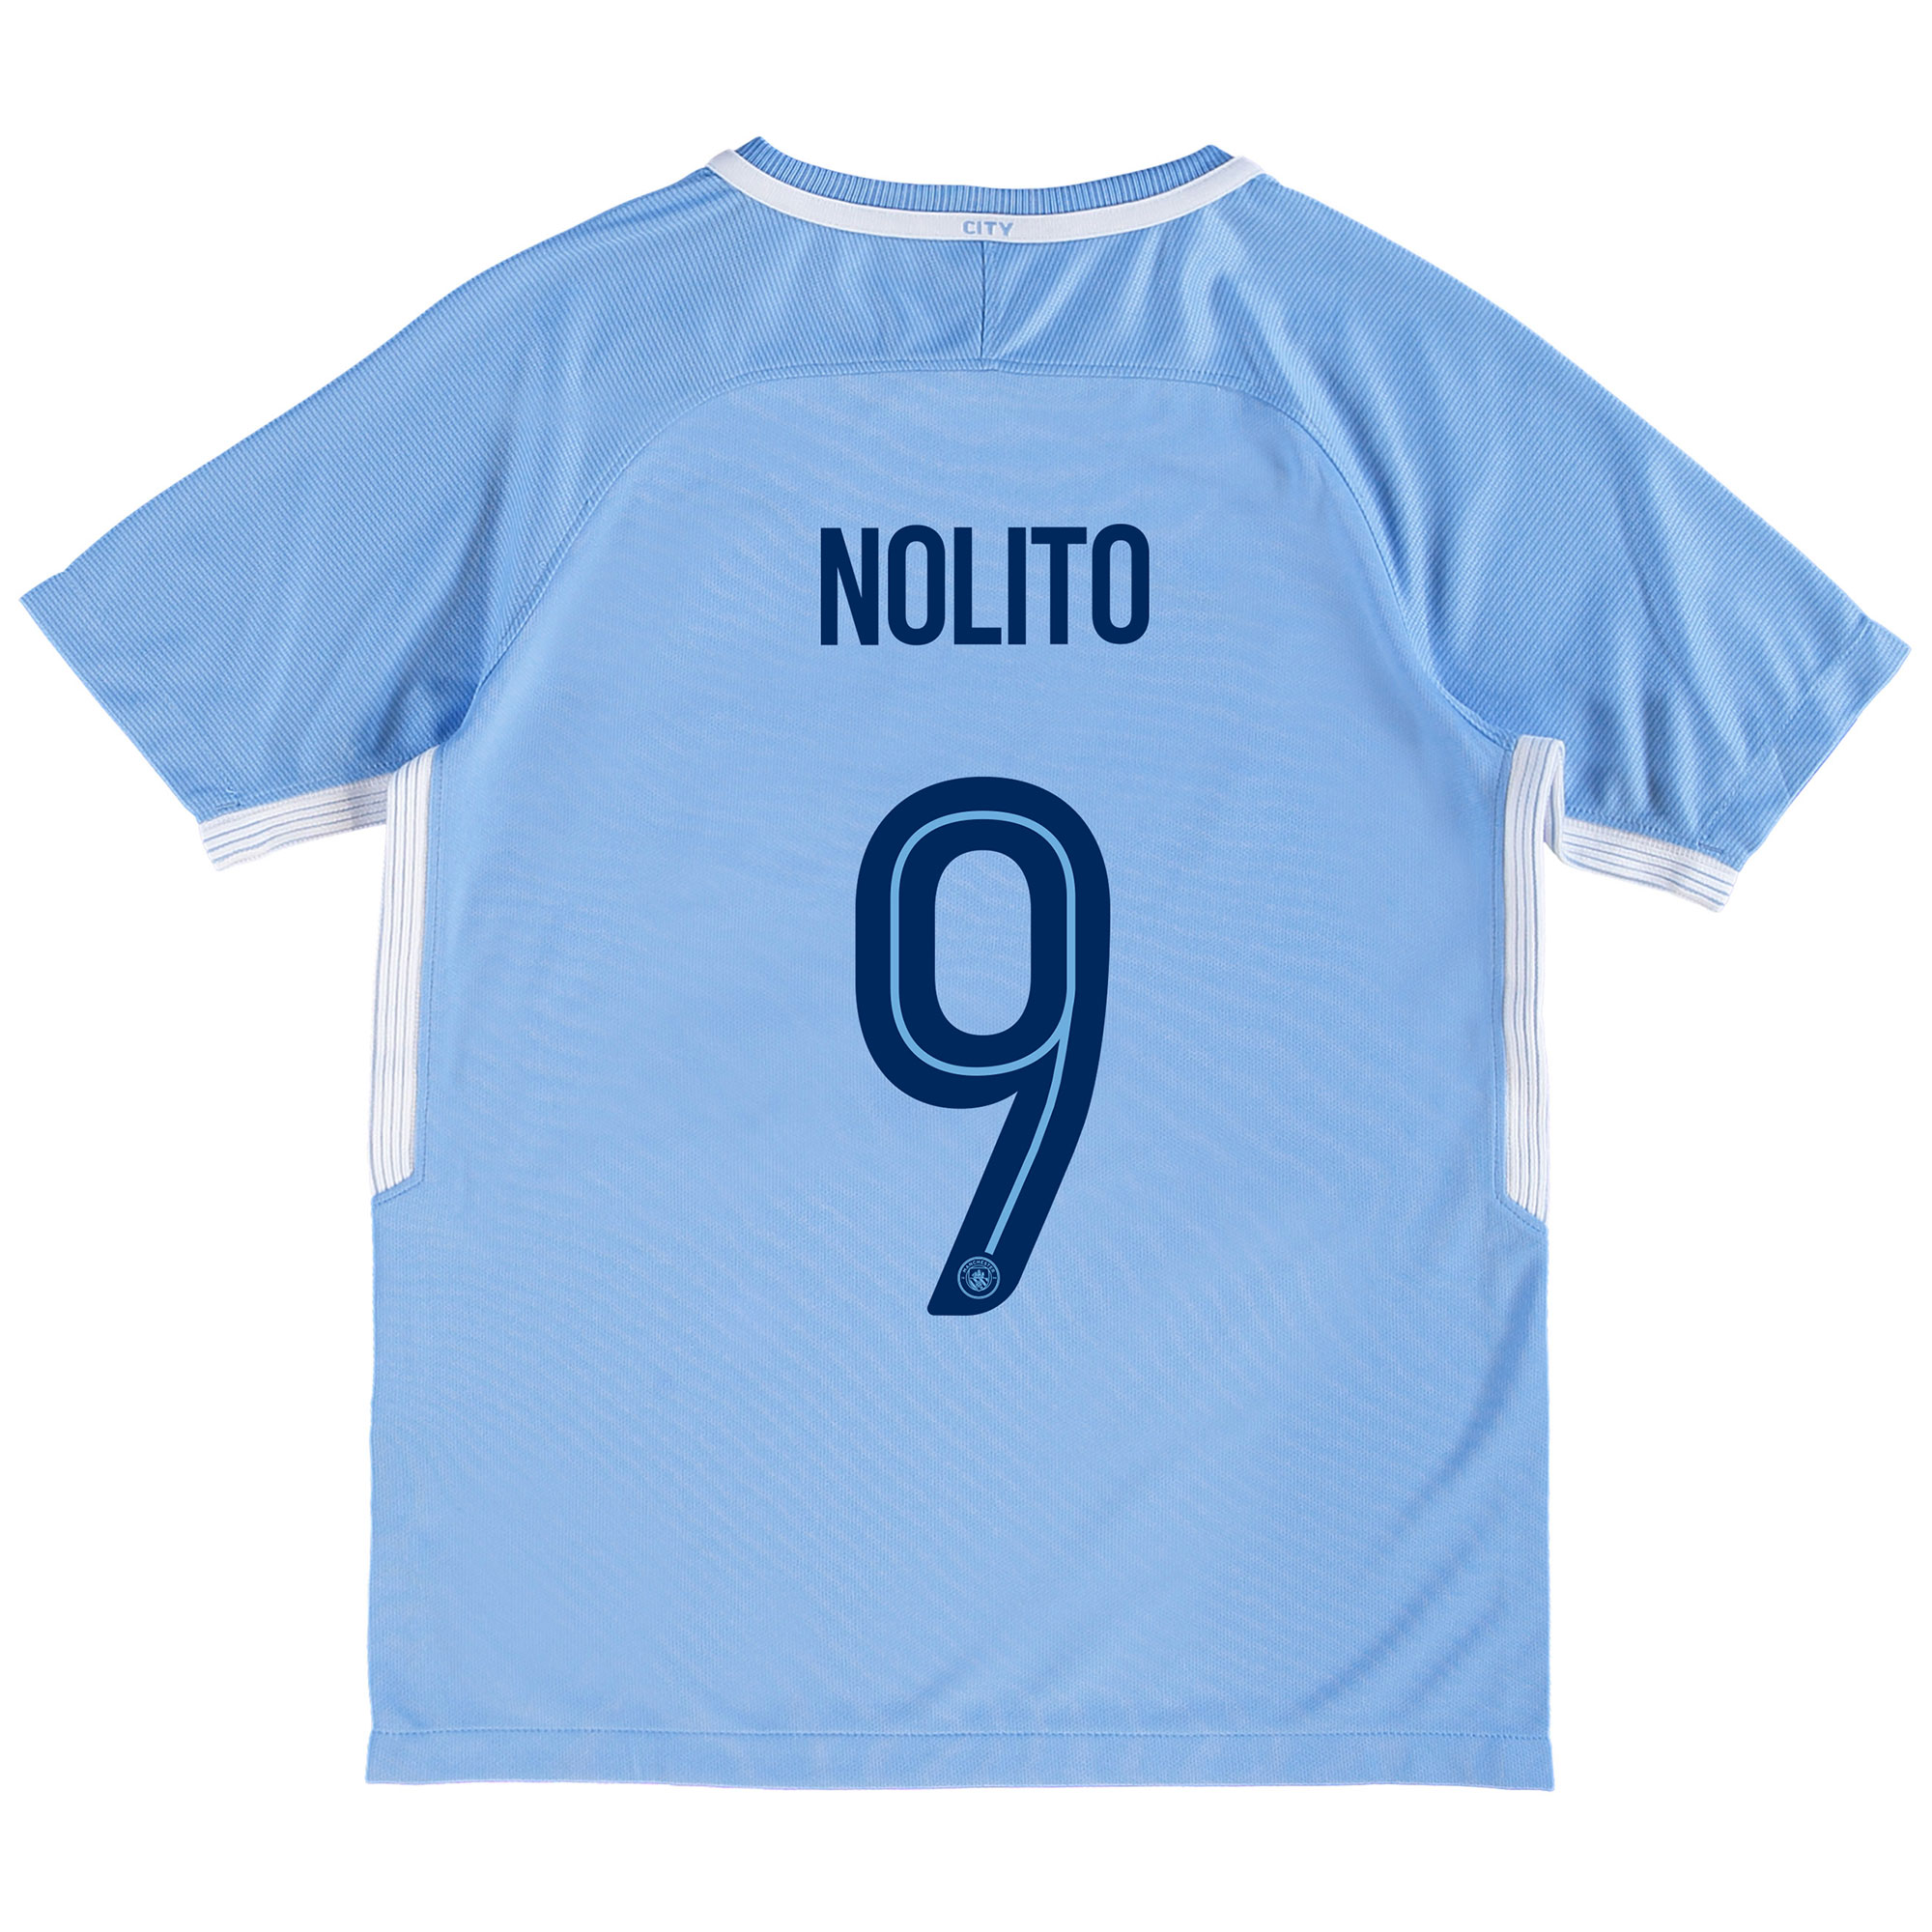 Manchester City Home Stadium Cup Shirt 2017-18 - Kids with Nolito 9 pr